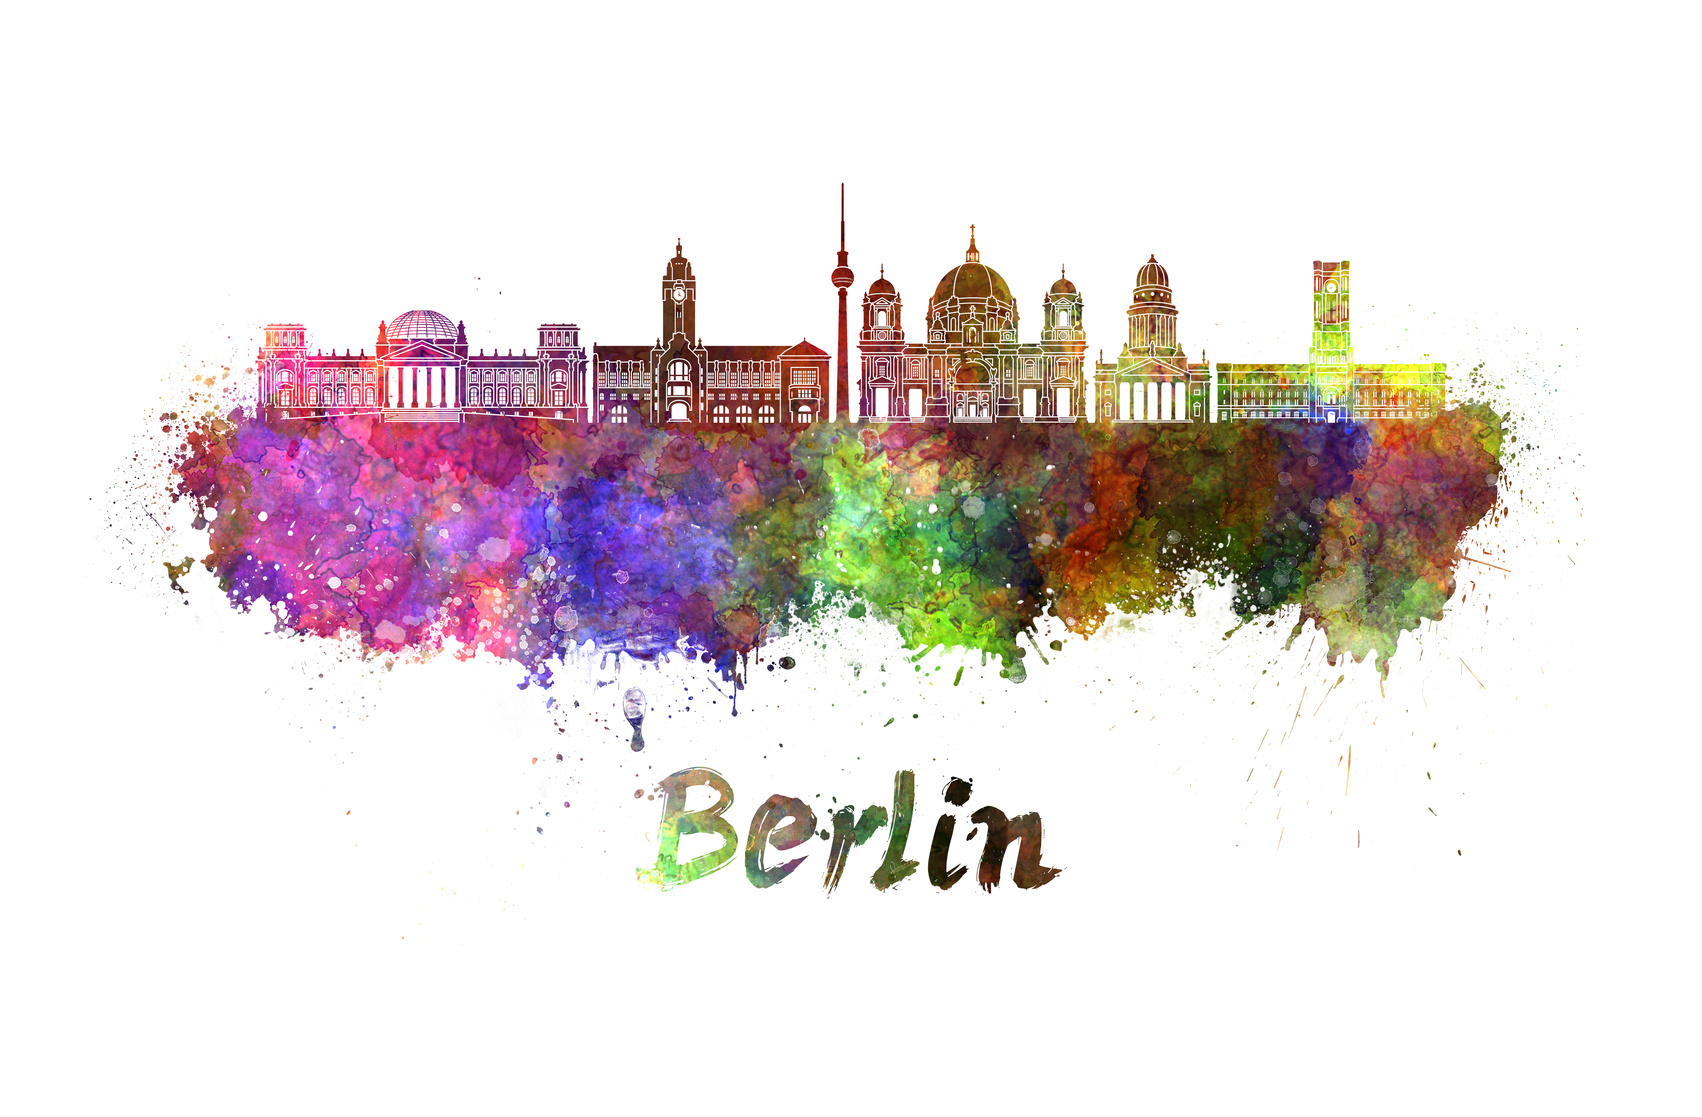 Berlin gets a boost